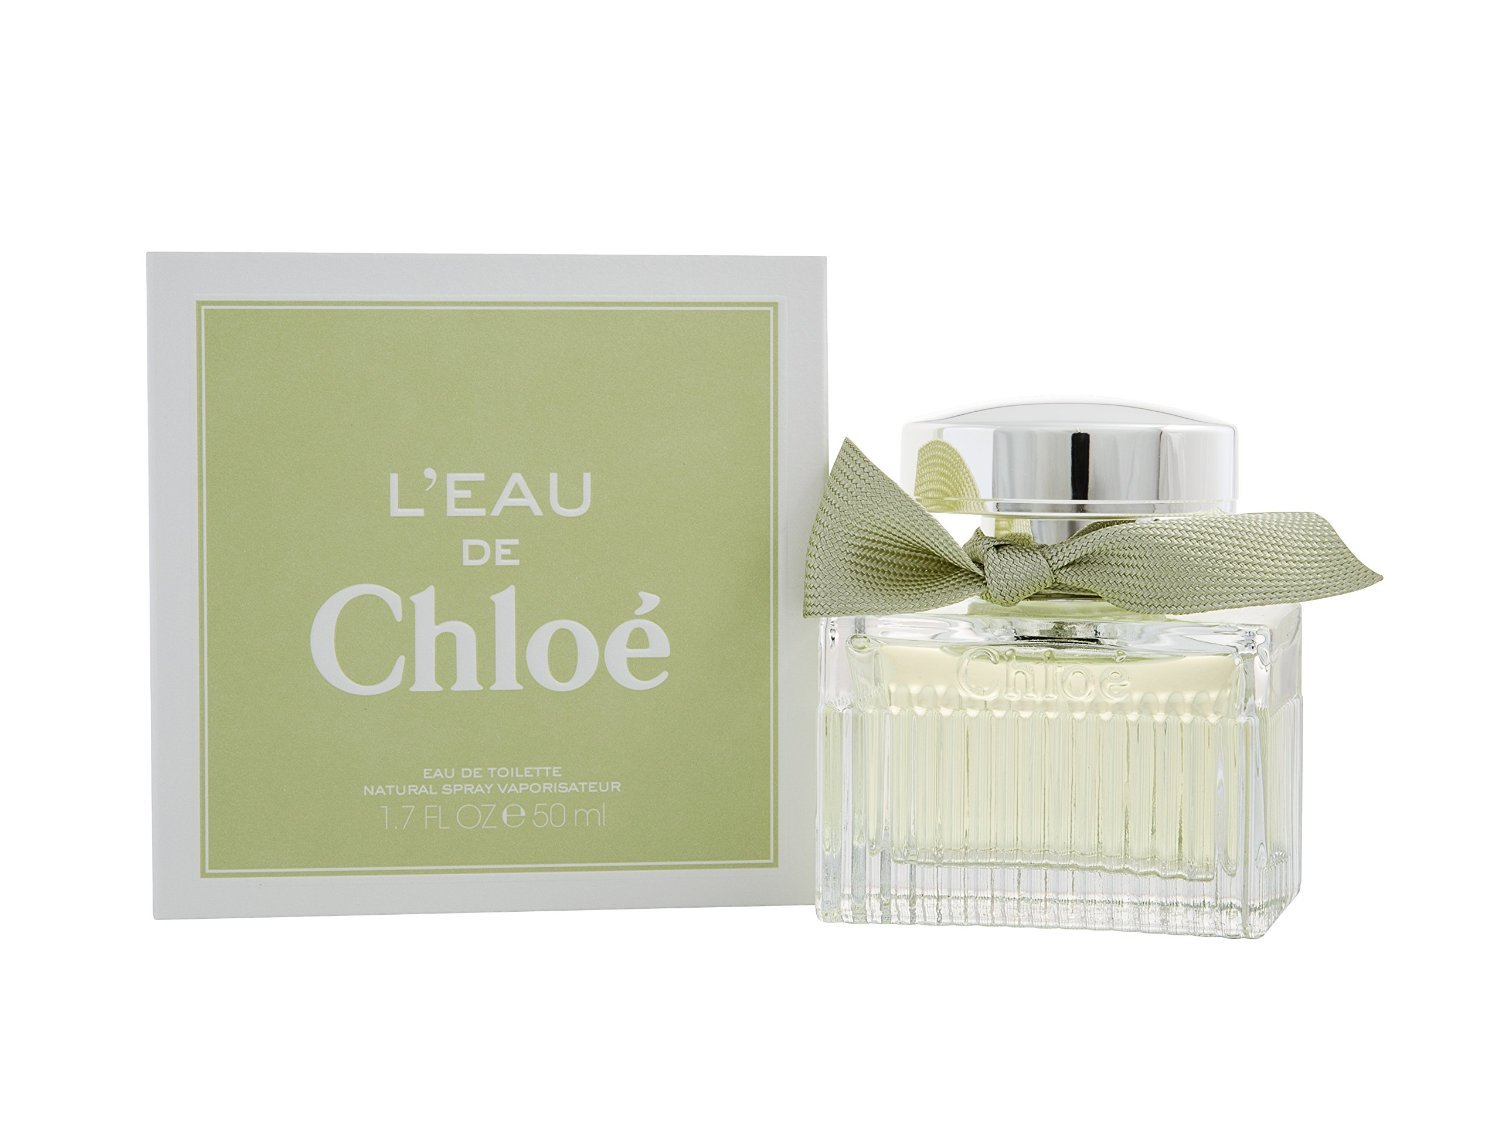 chloe l 39 eau de chloe eau de toilette spray for women 3 4 ounce chloe perfume for. Black Bedroom Furniture Sets. Home Design Ideas